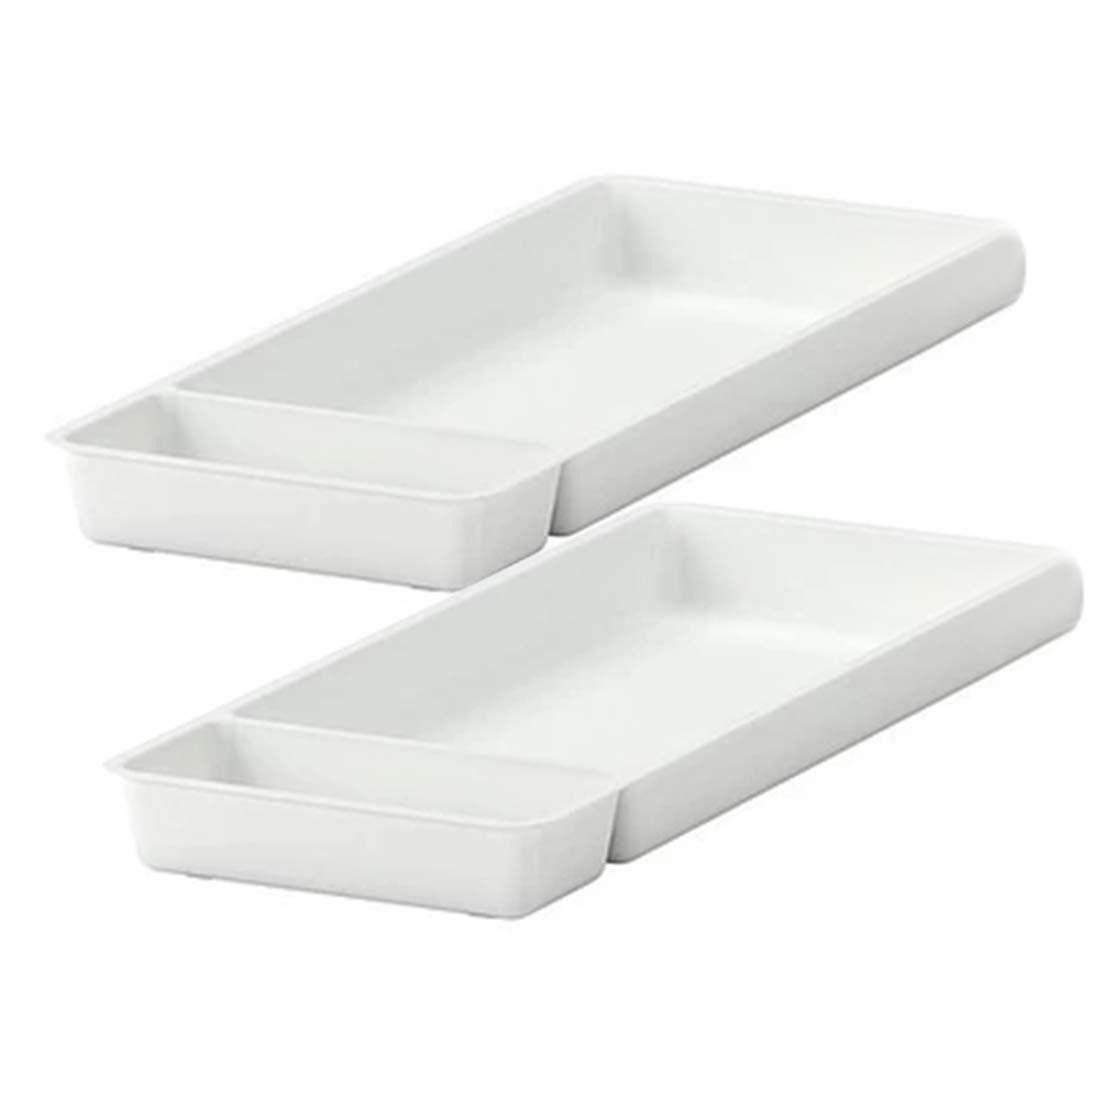 SHOW-WF Kitchen Drawer Dividers Cutlery Tray with Compartments,Plastic Drawer Insert Organizer for Utensils/Craft Supplies/Jewellery, White,20X50cm